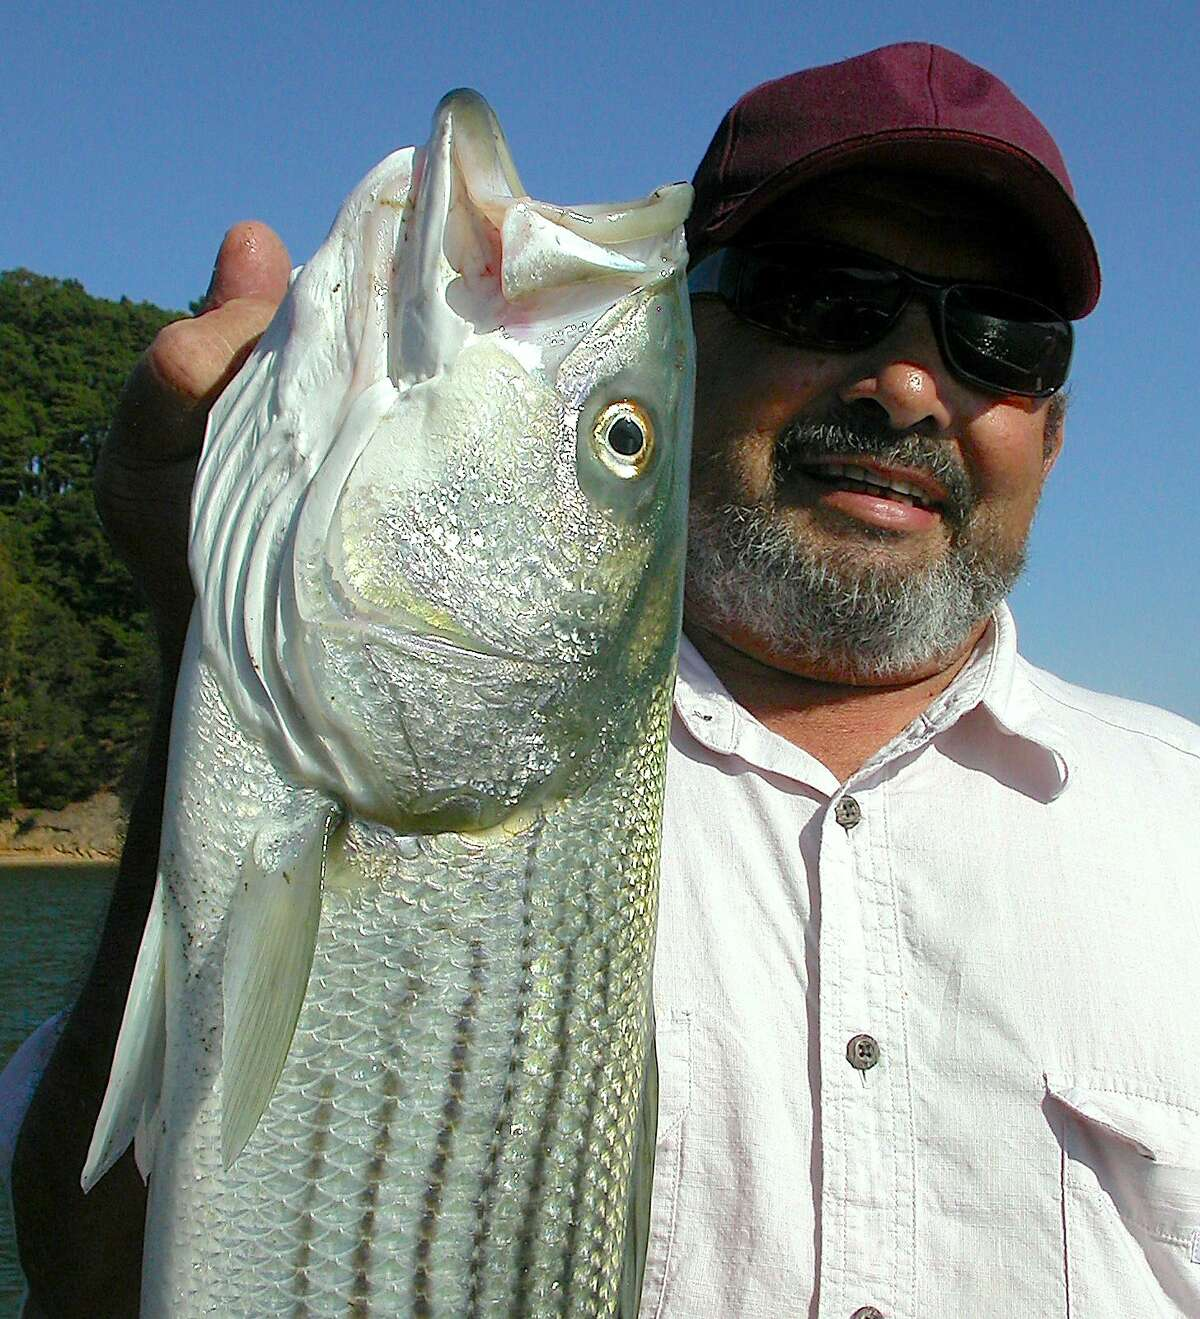 Rico Petri displays a beautiful striped bass he caught casting with a spinning rod along the Marin shoreline near Tiburon in San Francisco Bay